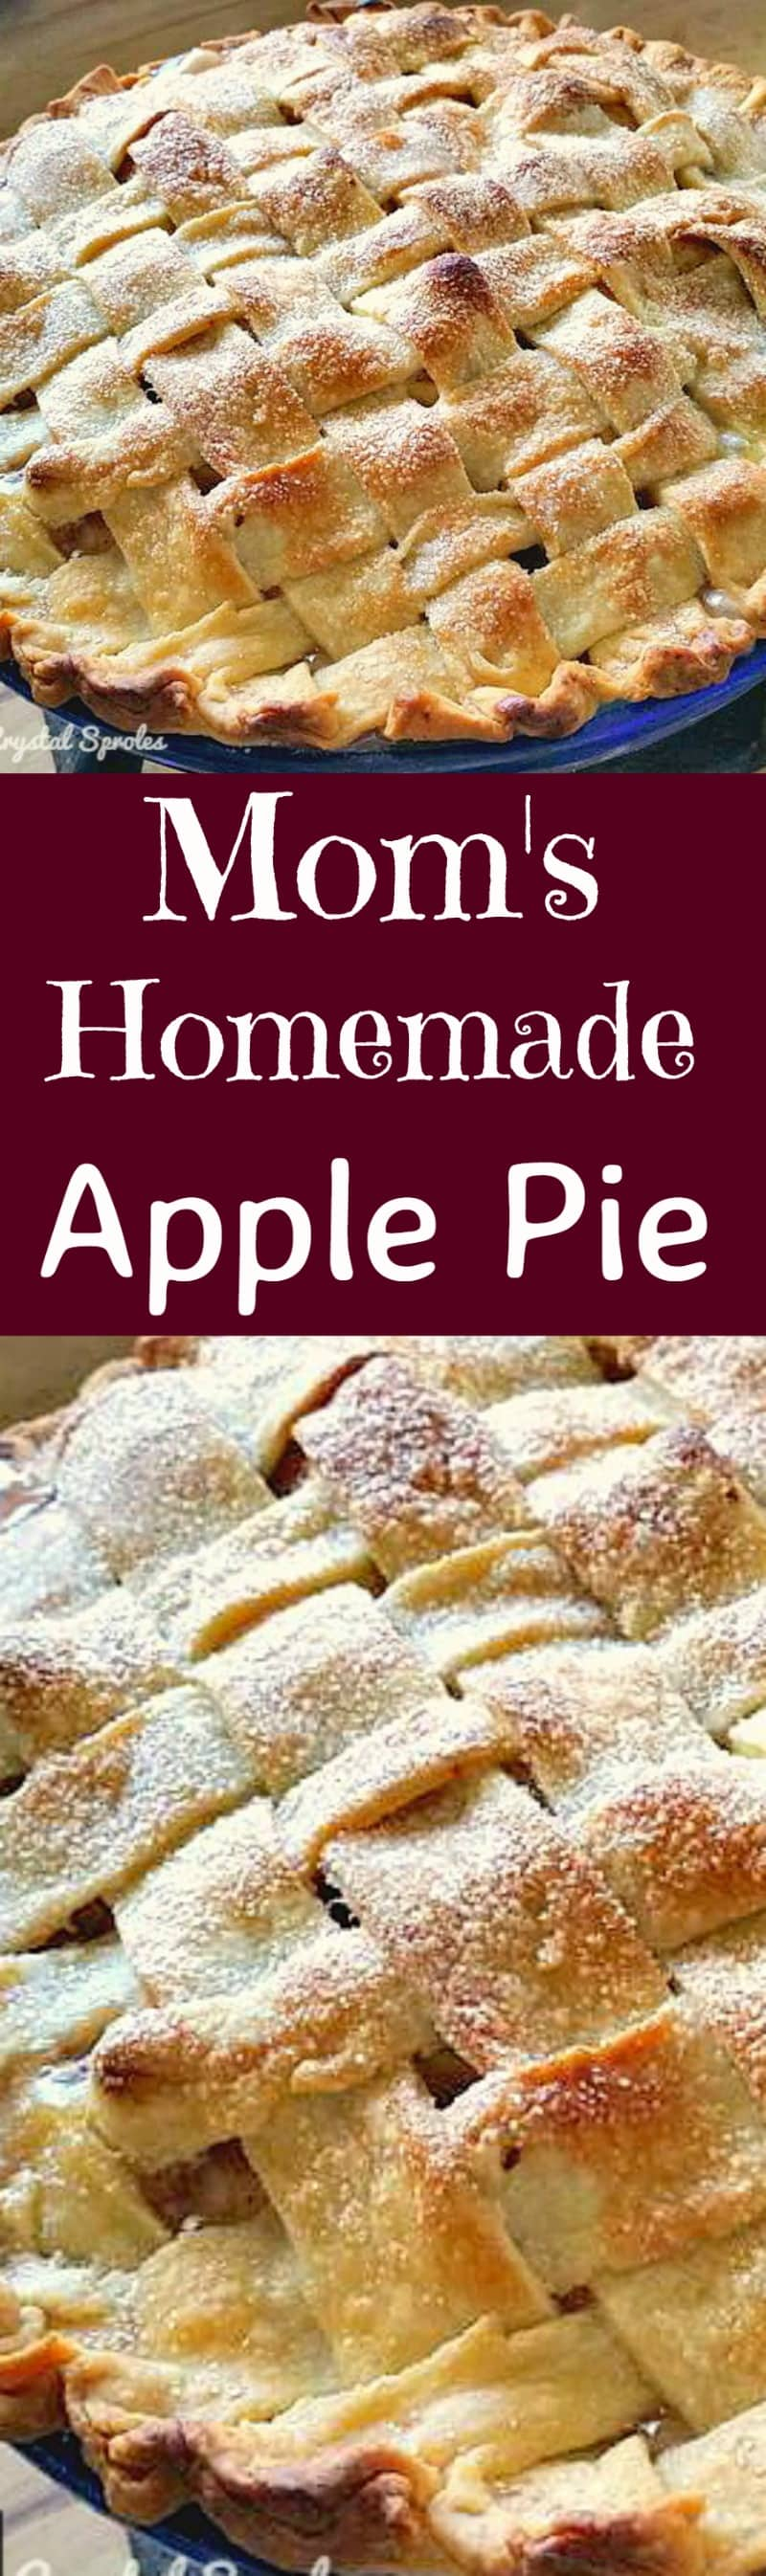 Mom's Homemade Apple Pie. A wonderful old family recipe, simple ...